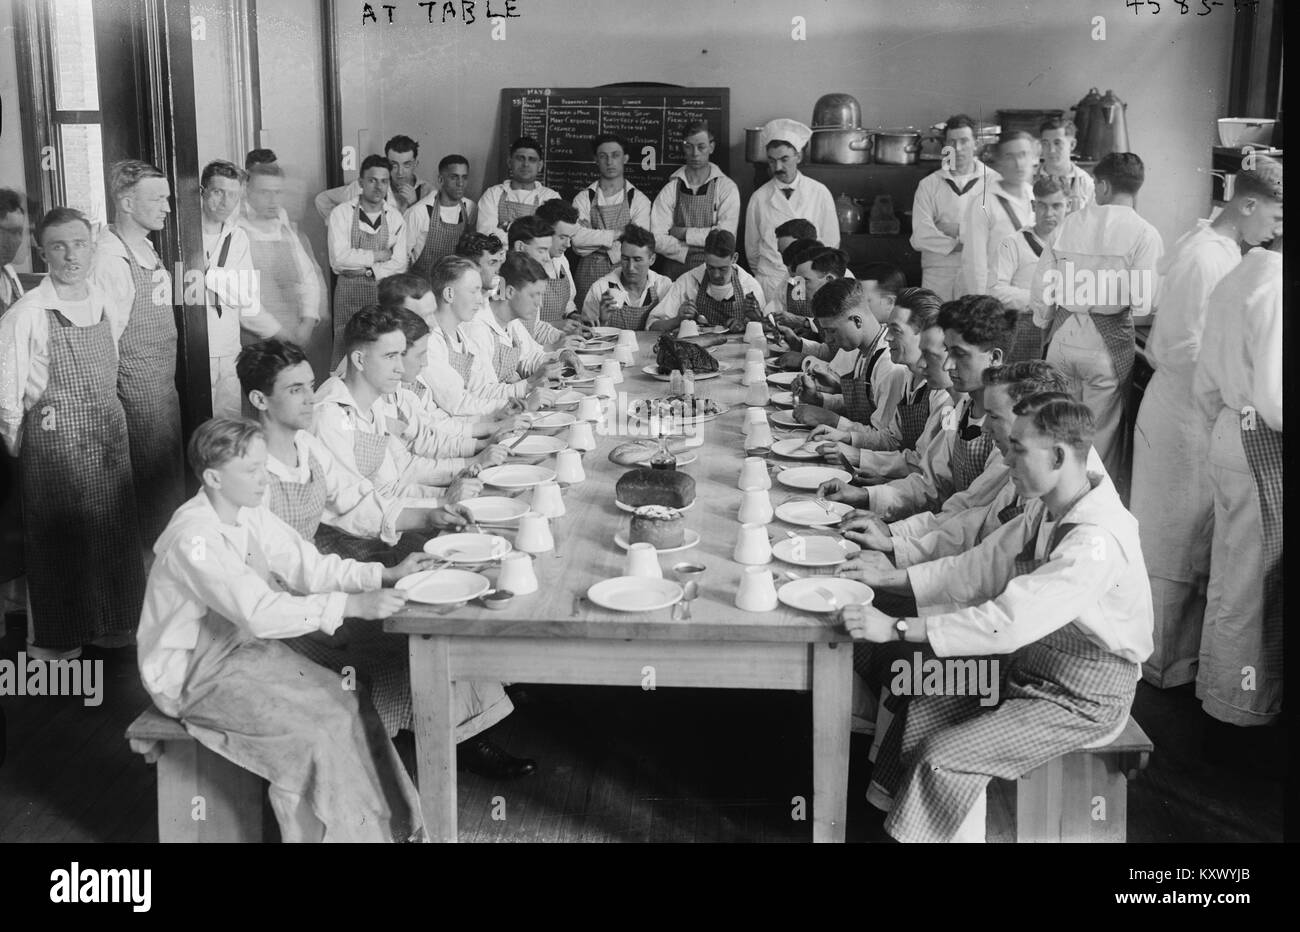 Midshipmen at Dining Table eat in Formation - Stock Image